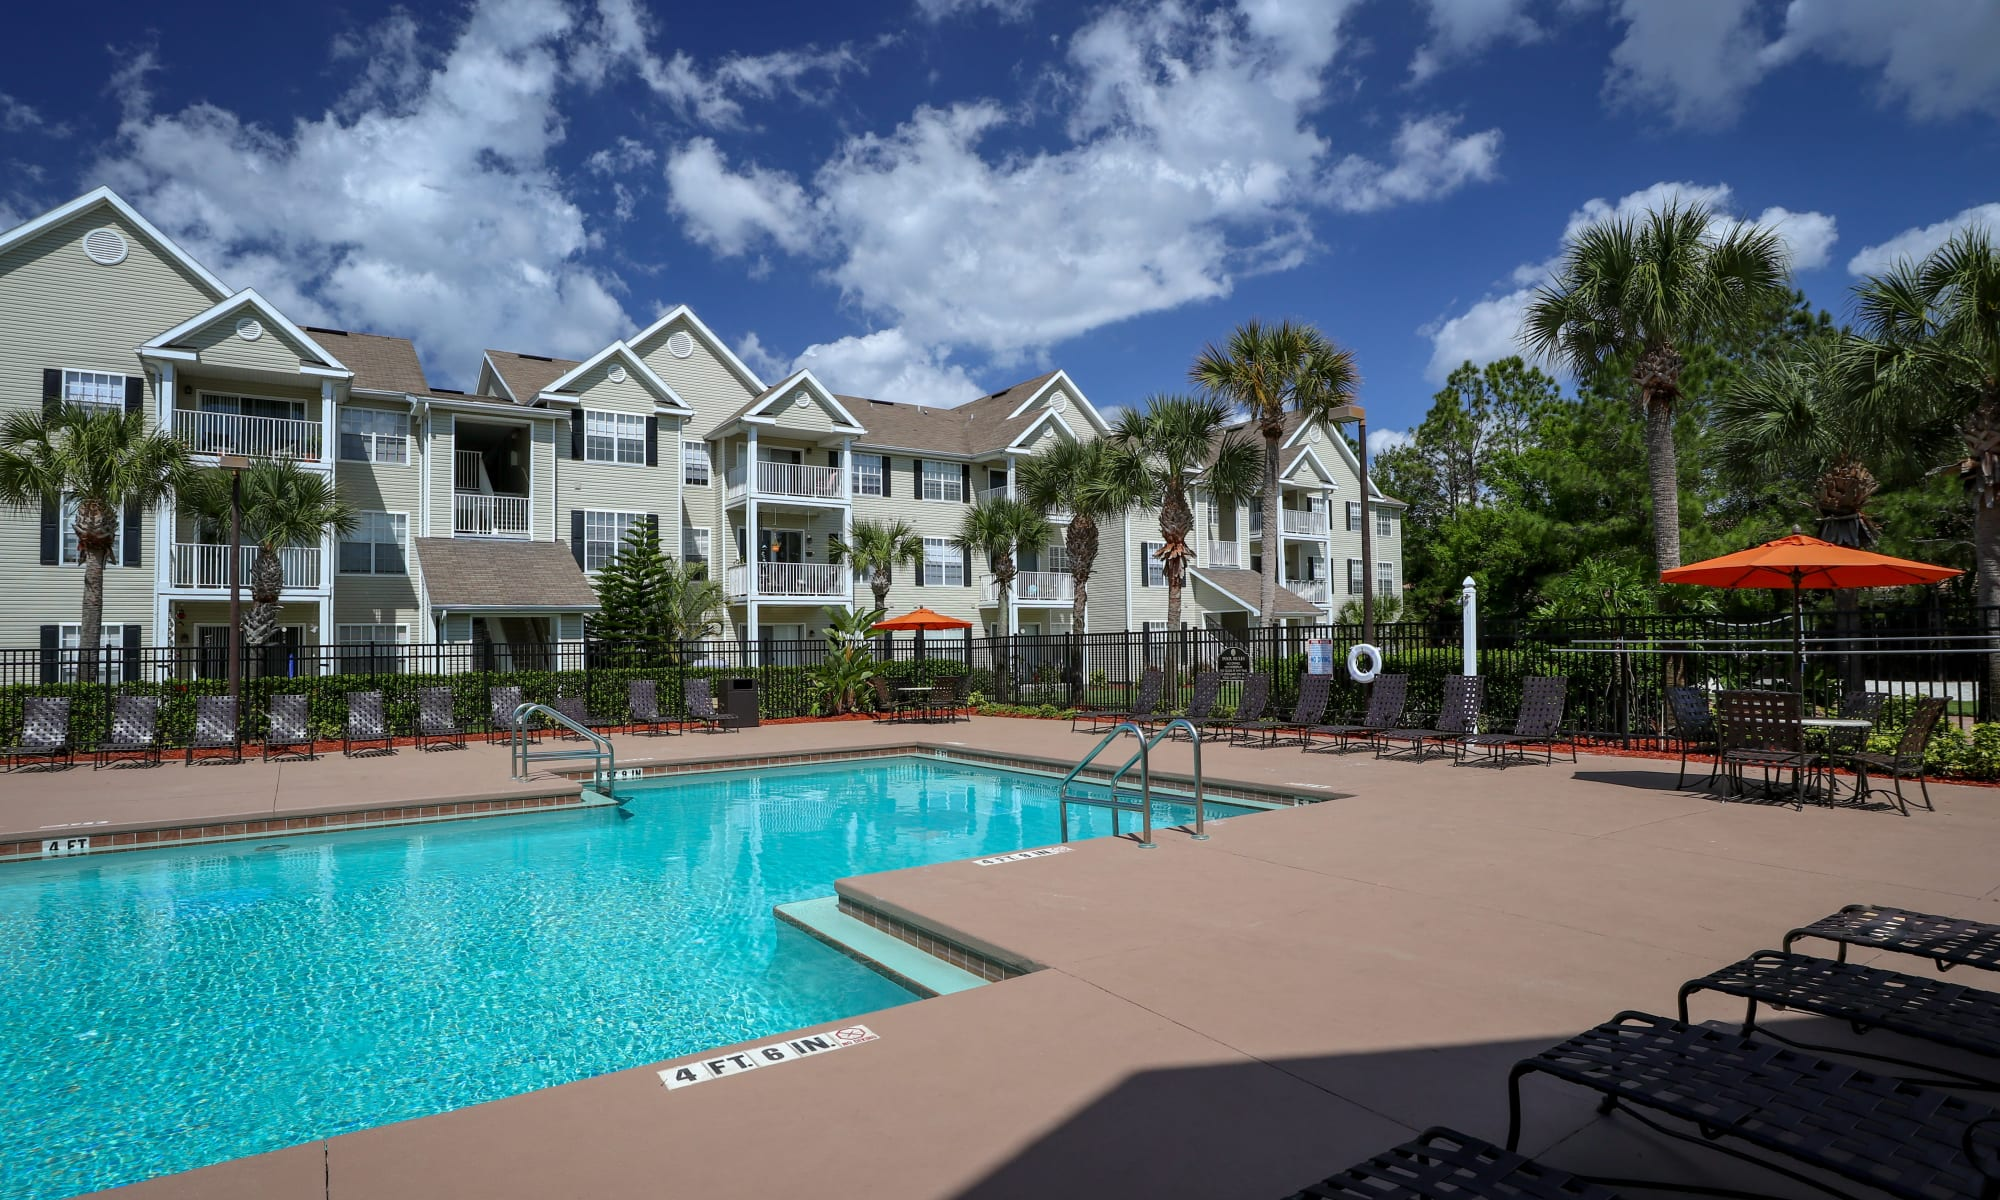 Apartments in New Port Richey, FL